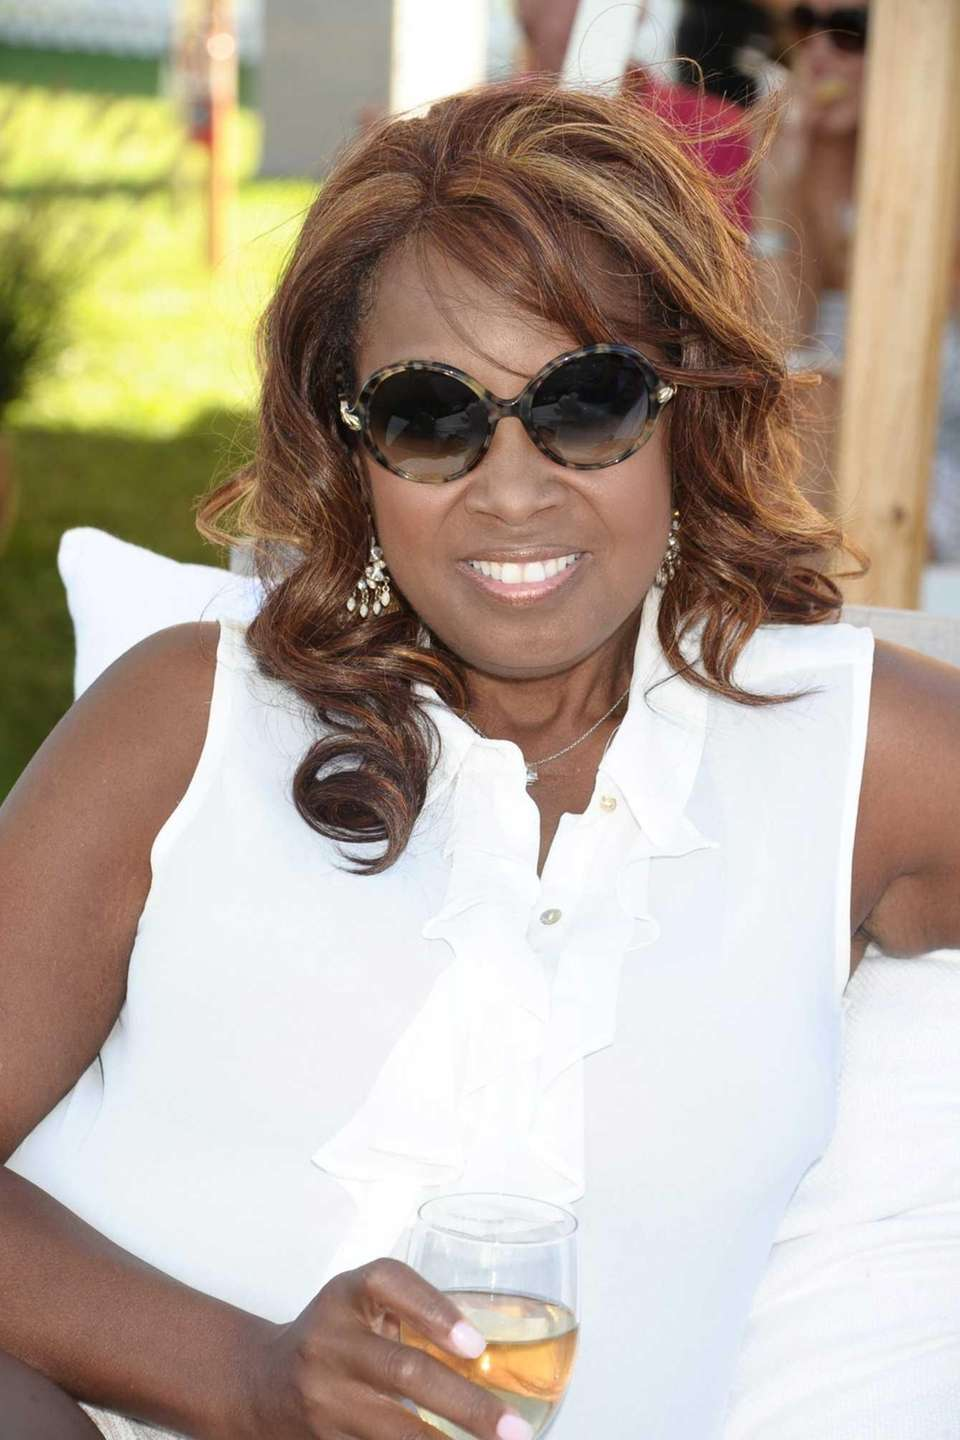 Star Jones attends the final match of the